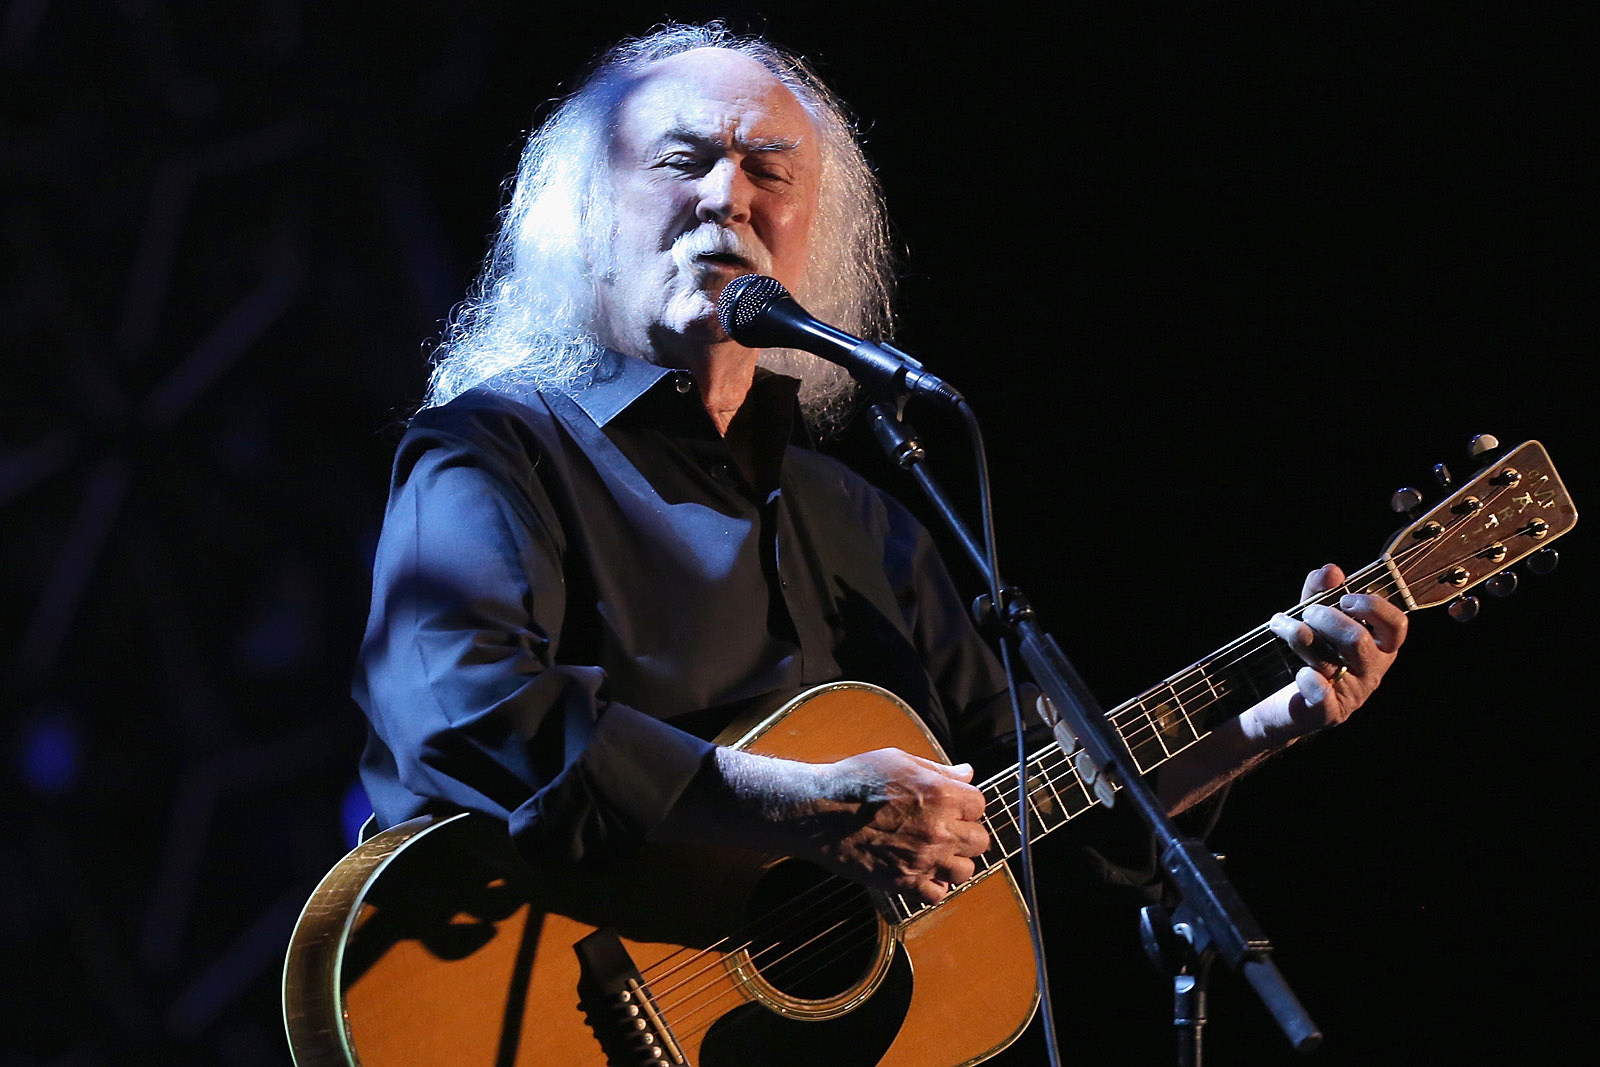 David Crosby Says He's the 'Child' in His Band of Younger Musicians